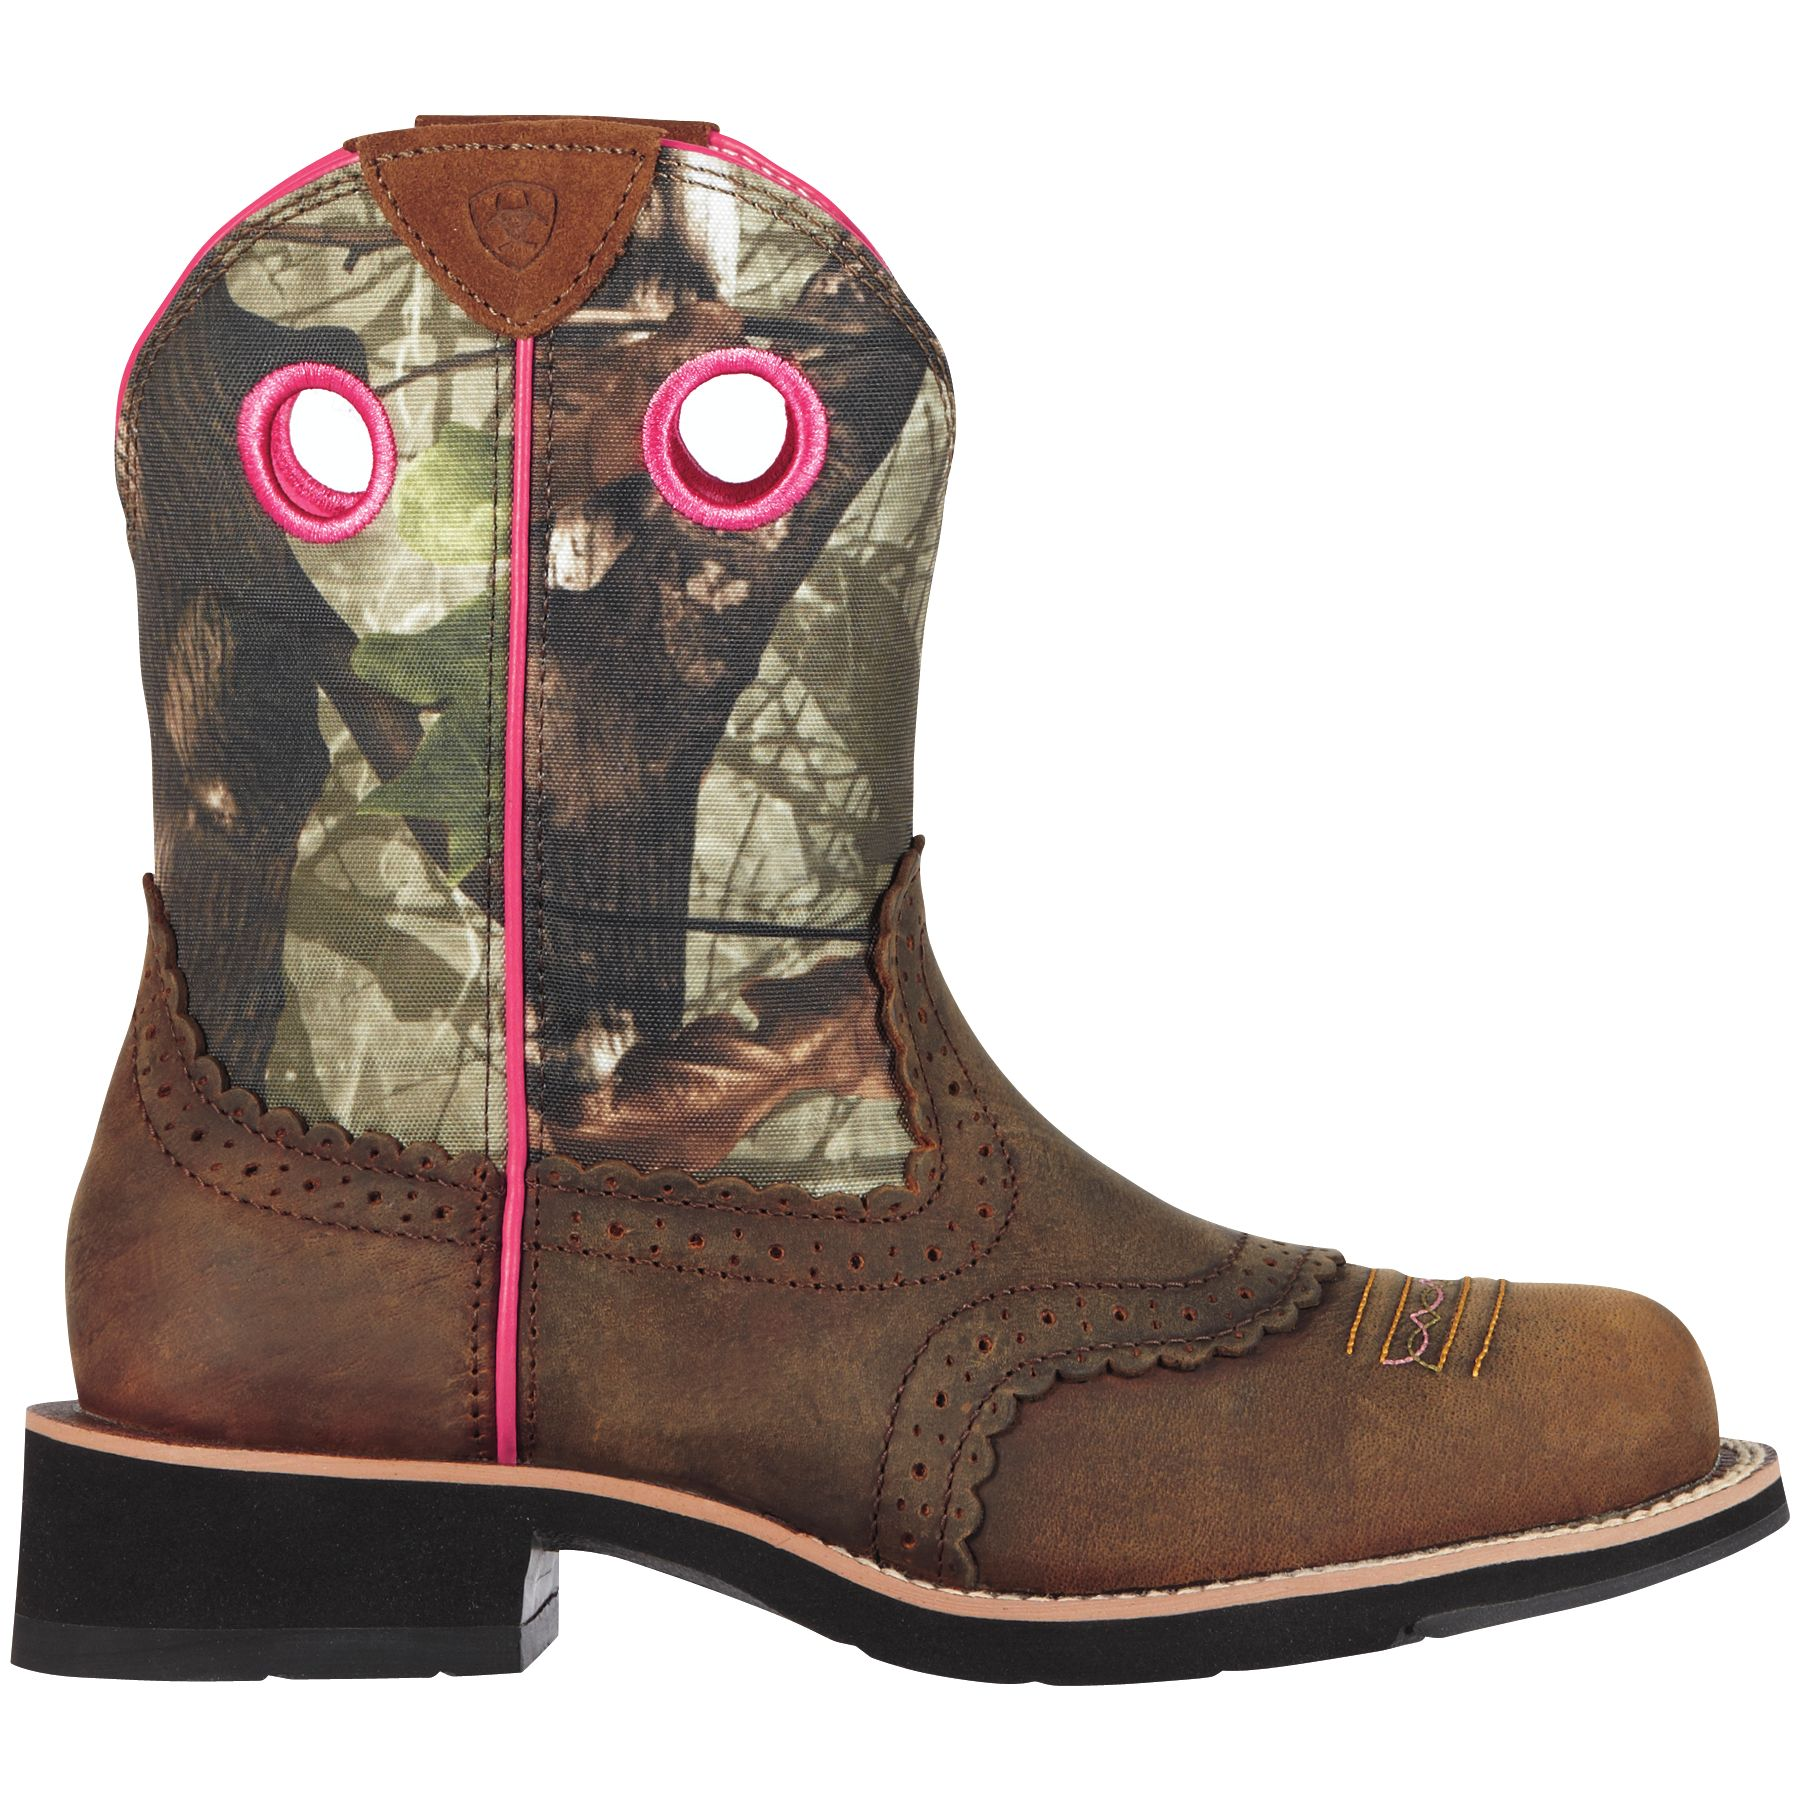 Ariat Women's Fatbaby Camo Western Boots, Size: 6.0, Distressed Brown Mossy Oak Camo thumbnail